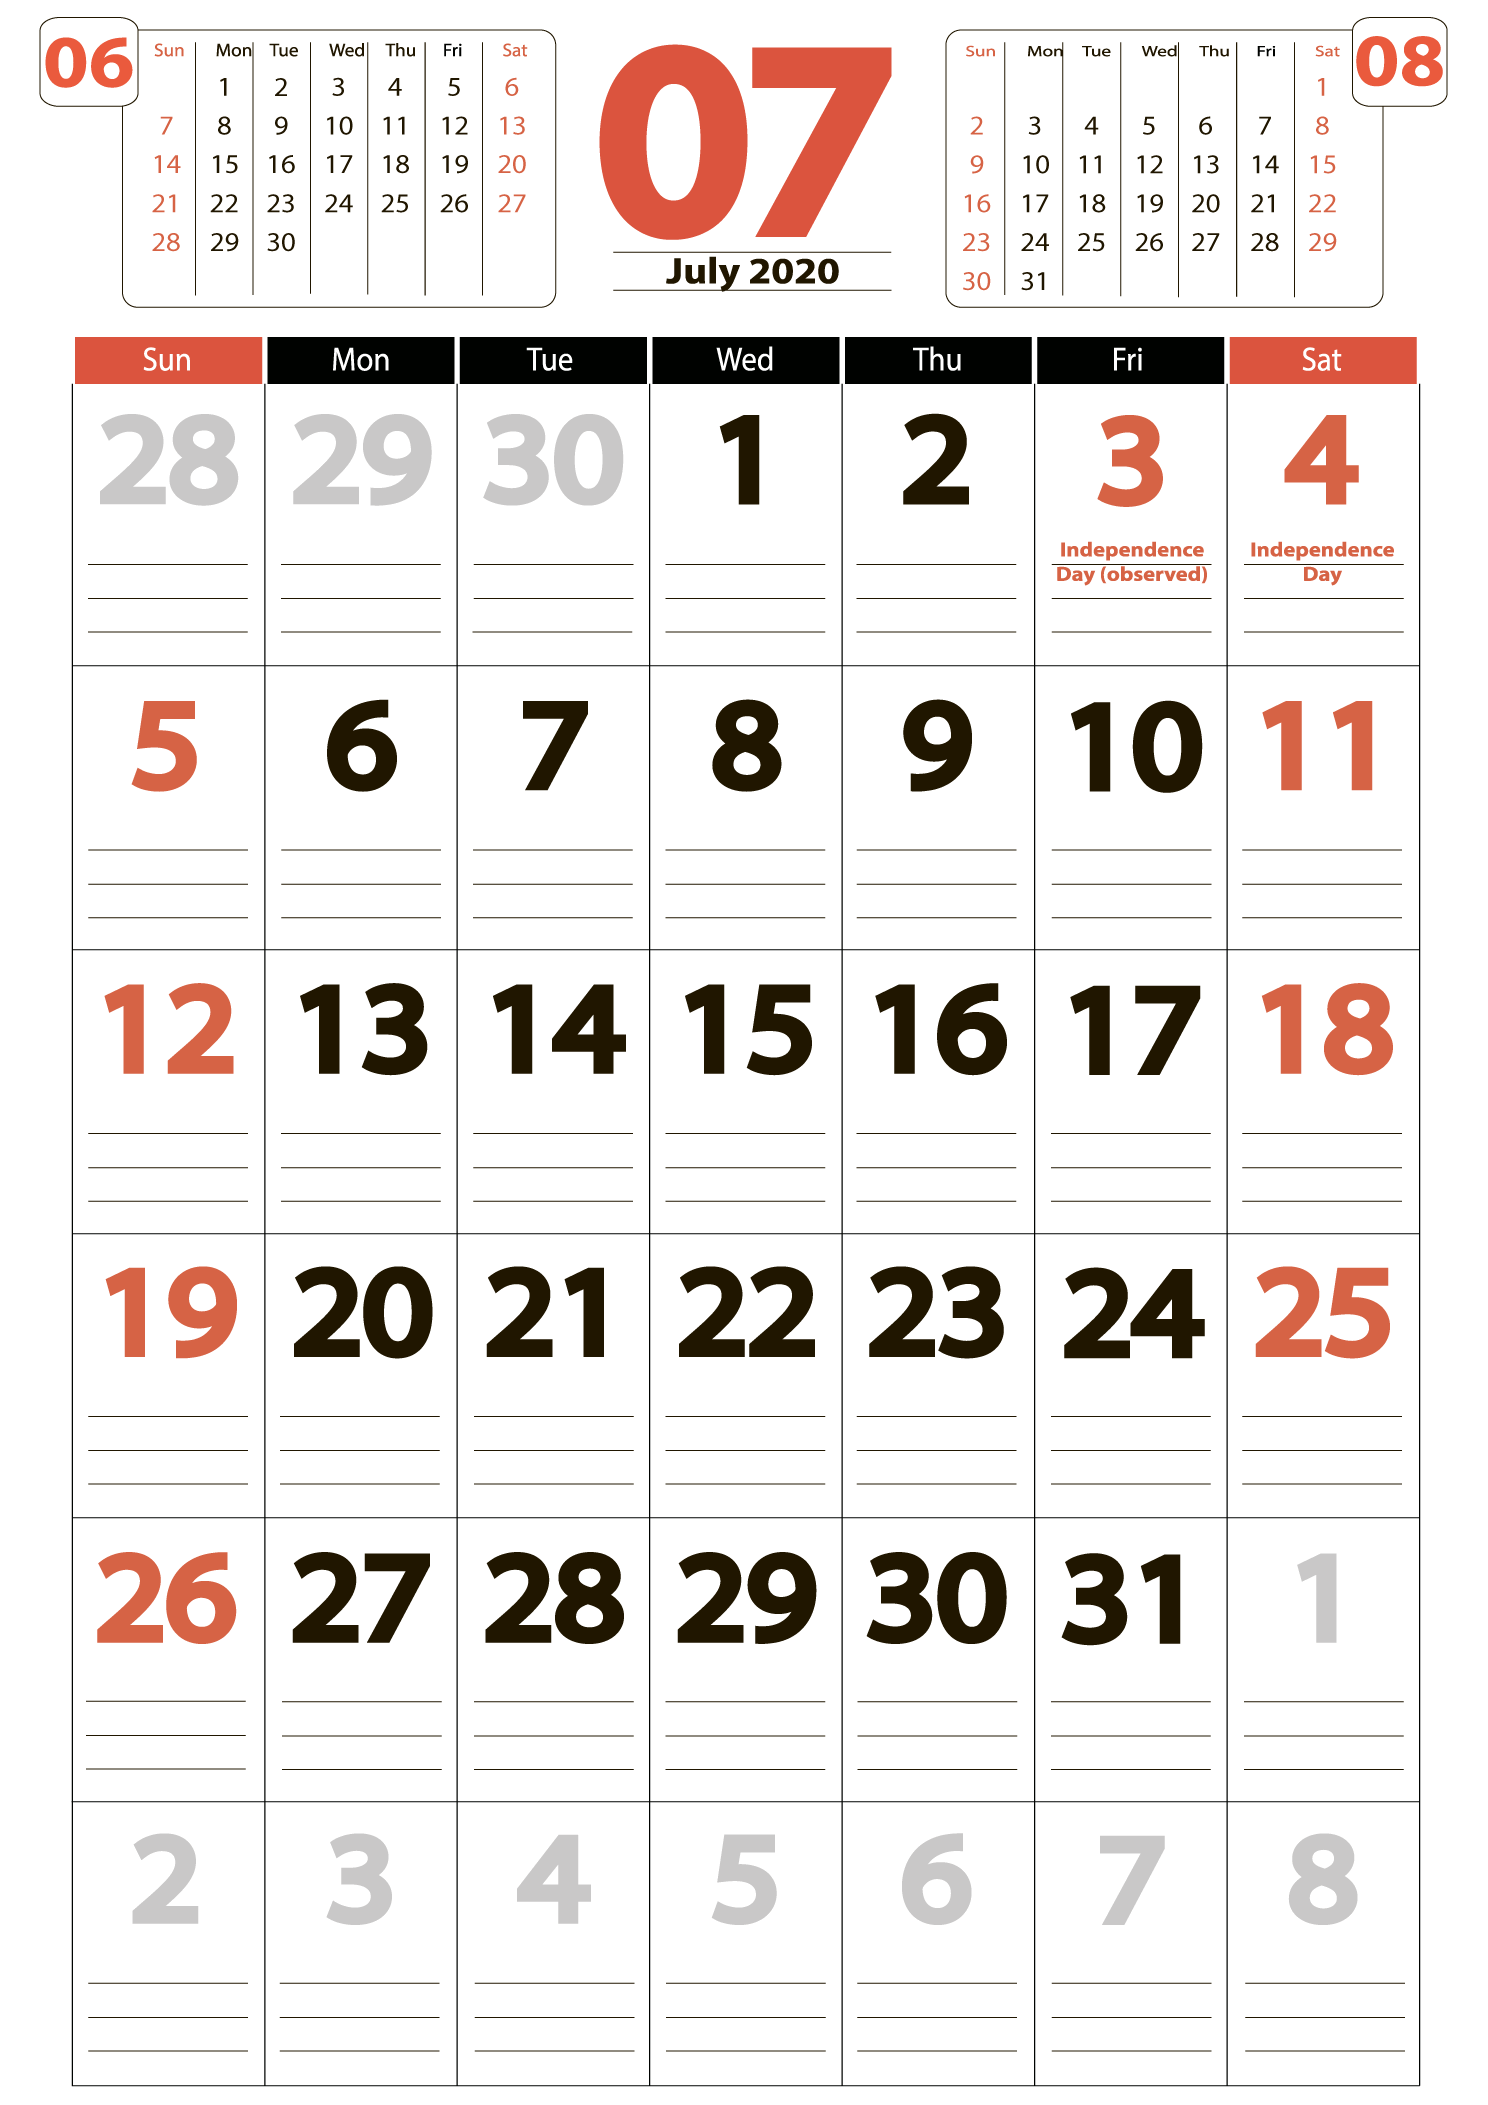 Download calendar july 2020